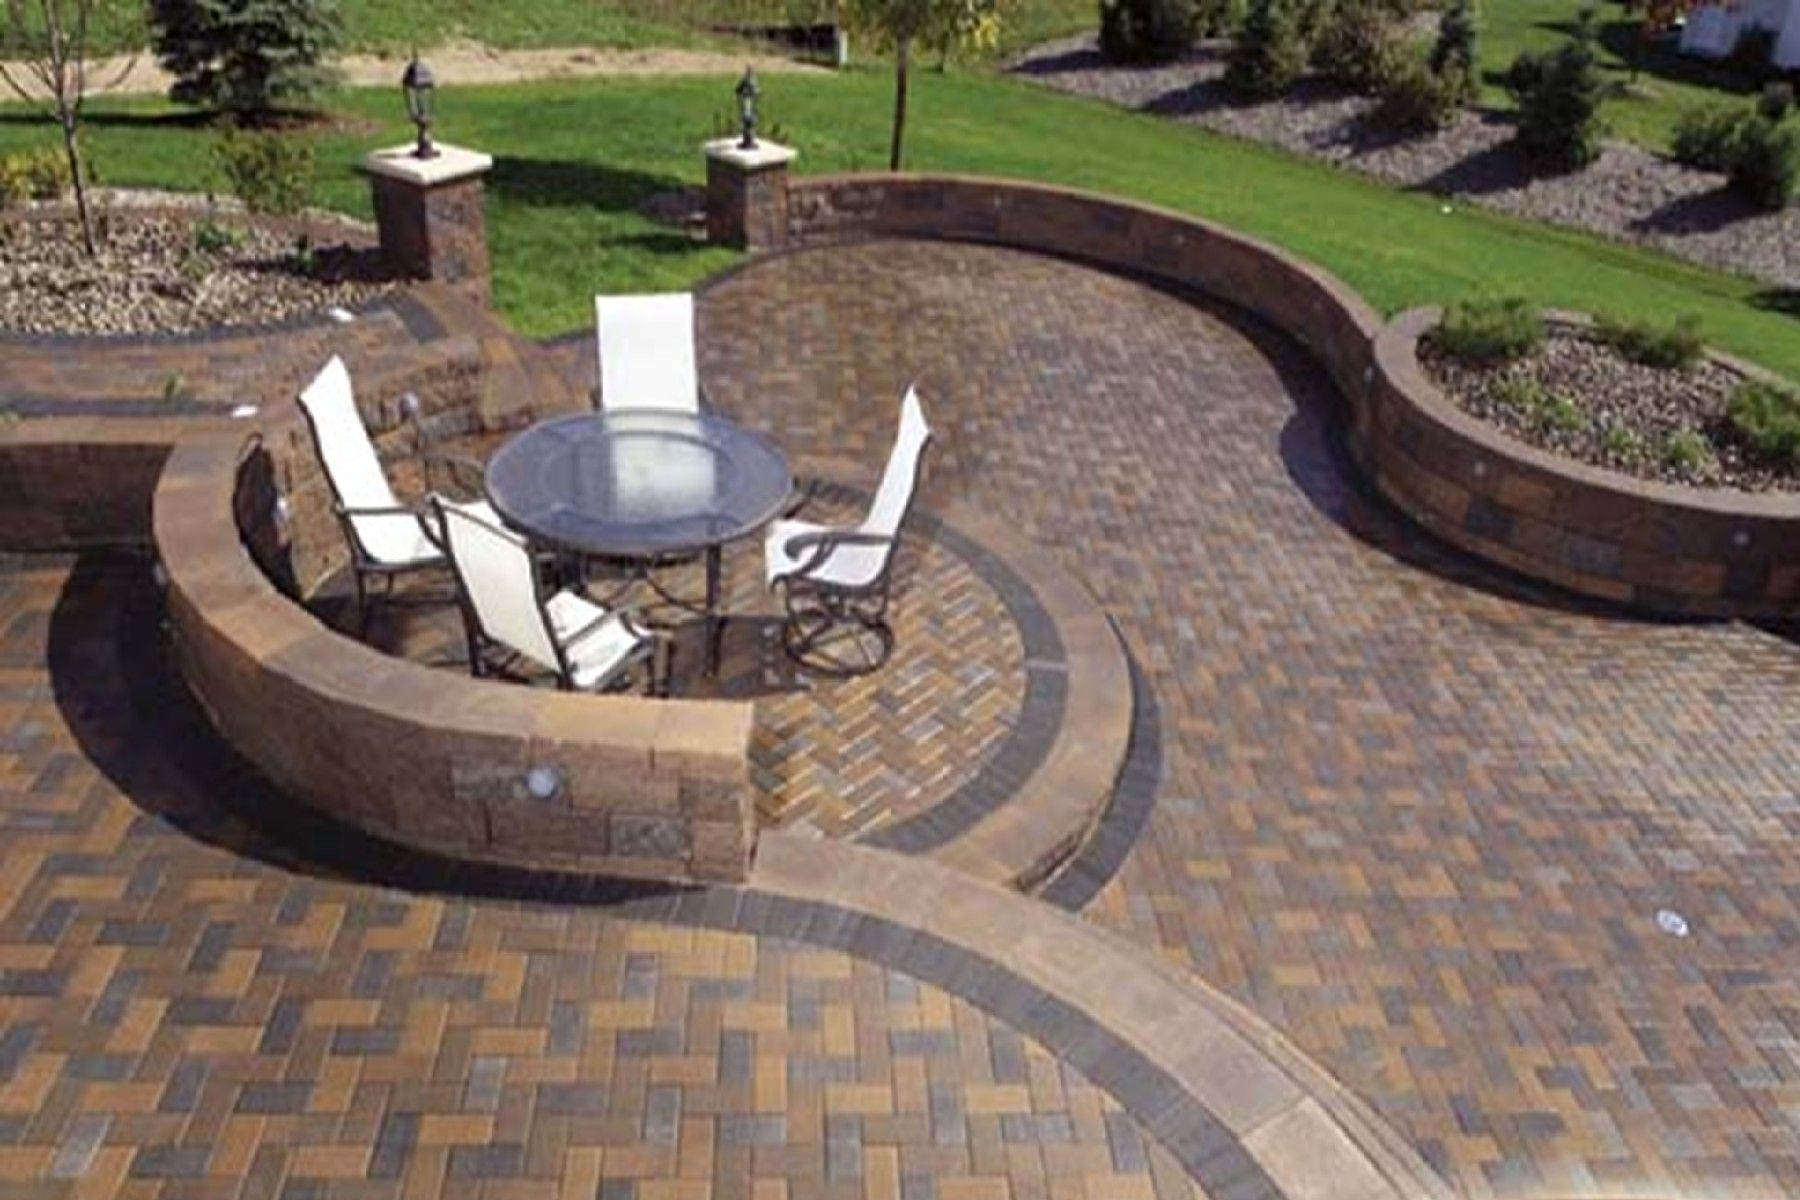 Stone Patio Design Ideas 10 tips and tricks for paver patios diy deck building patio design ideas diy 1000 Images About Paver Patio On Pinterest Paver Patterns Paver Patio Designs And Patio